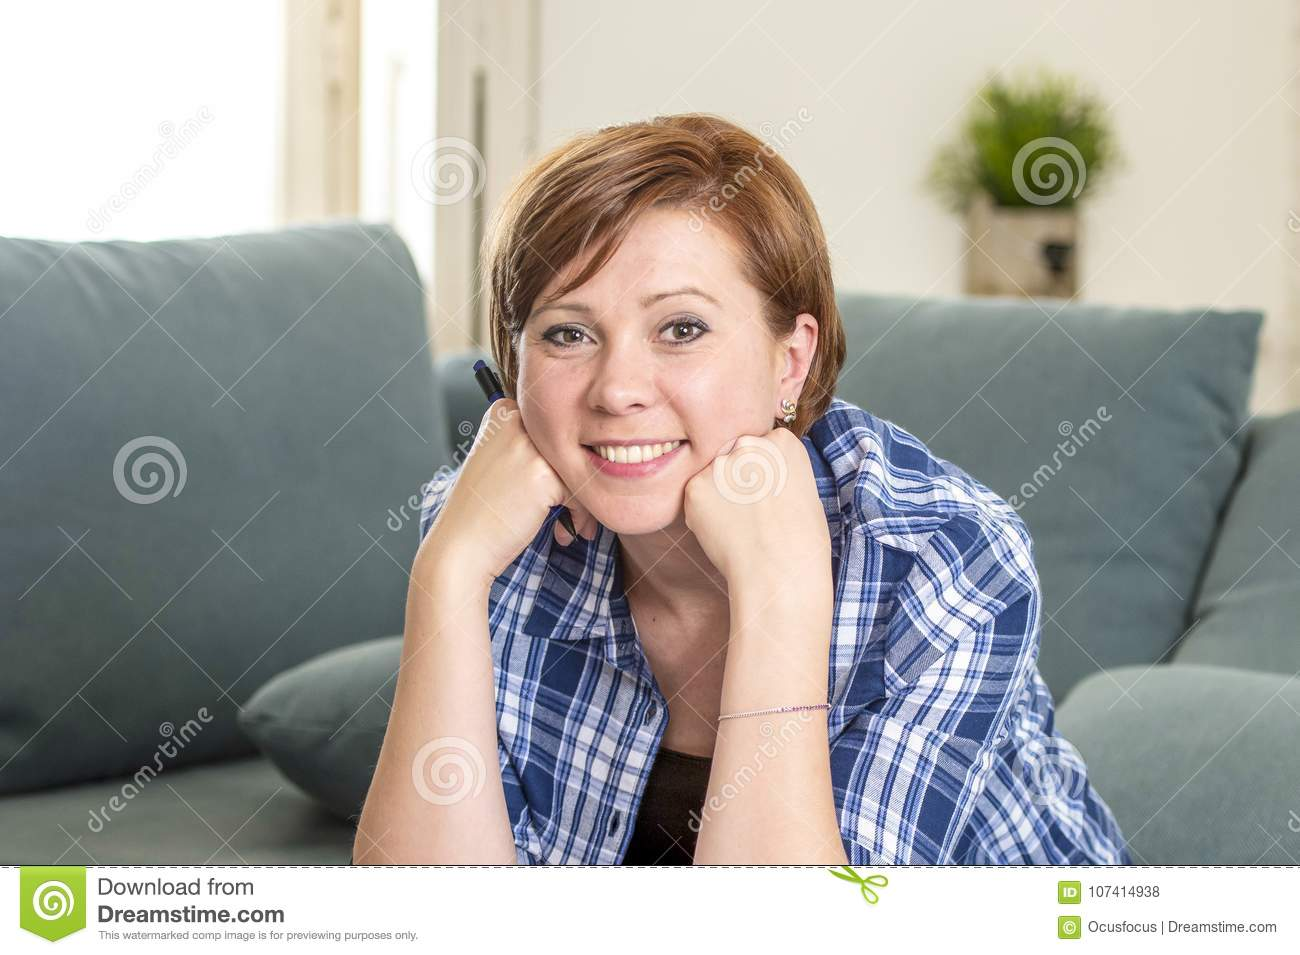 Young attractive and happy red hair woman around 30 years old smiling confident at home living room holding pen in her hand lookin